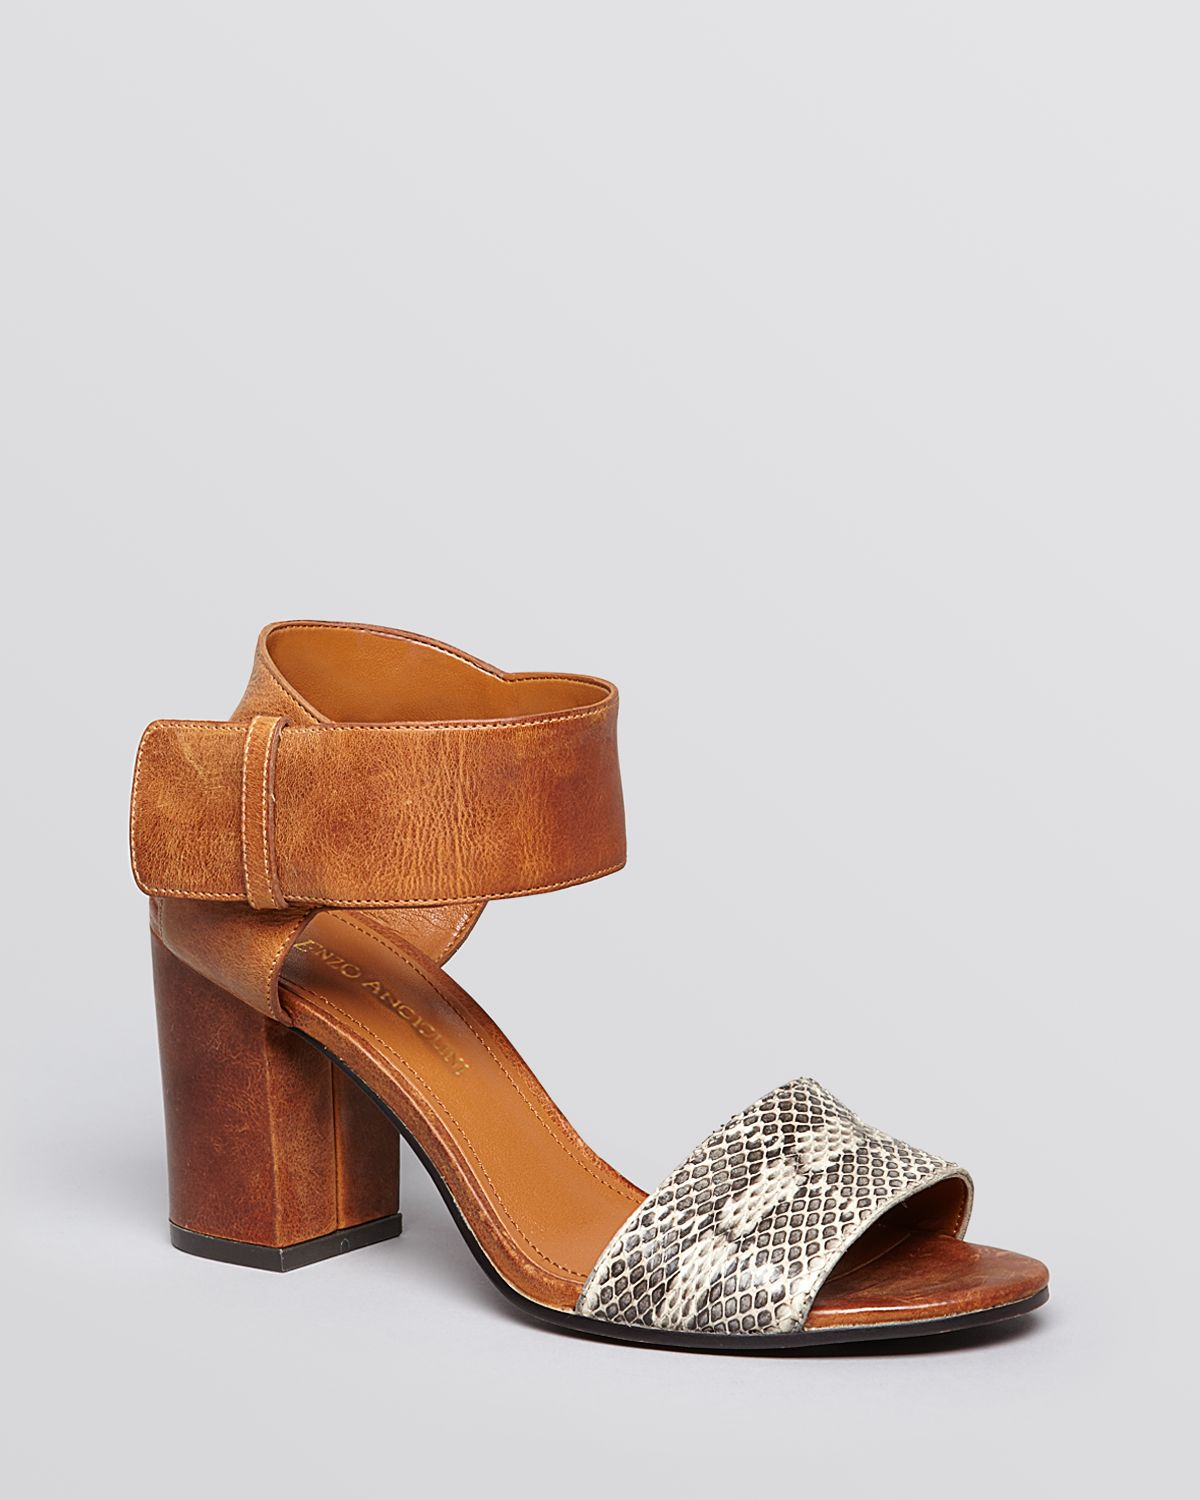 Enzo Angiolini Shoes New